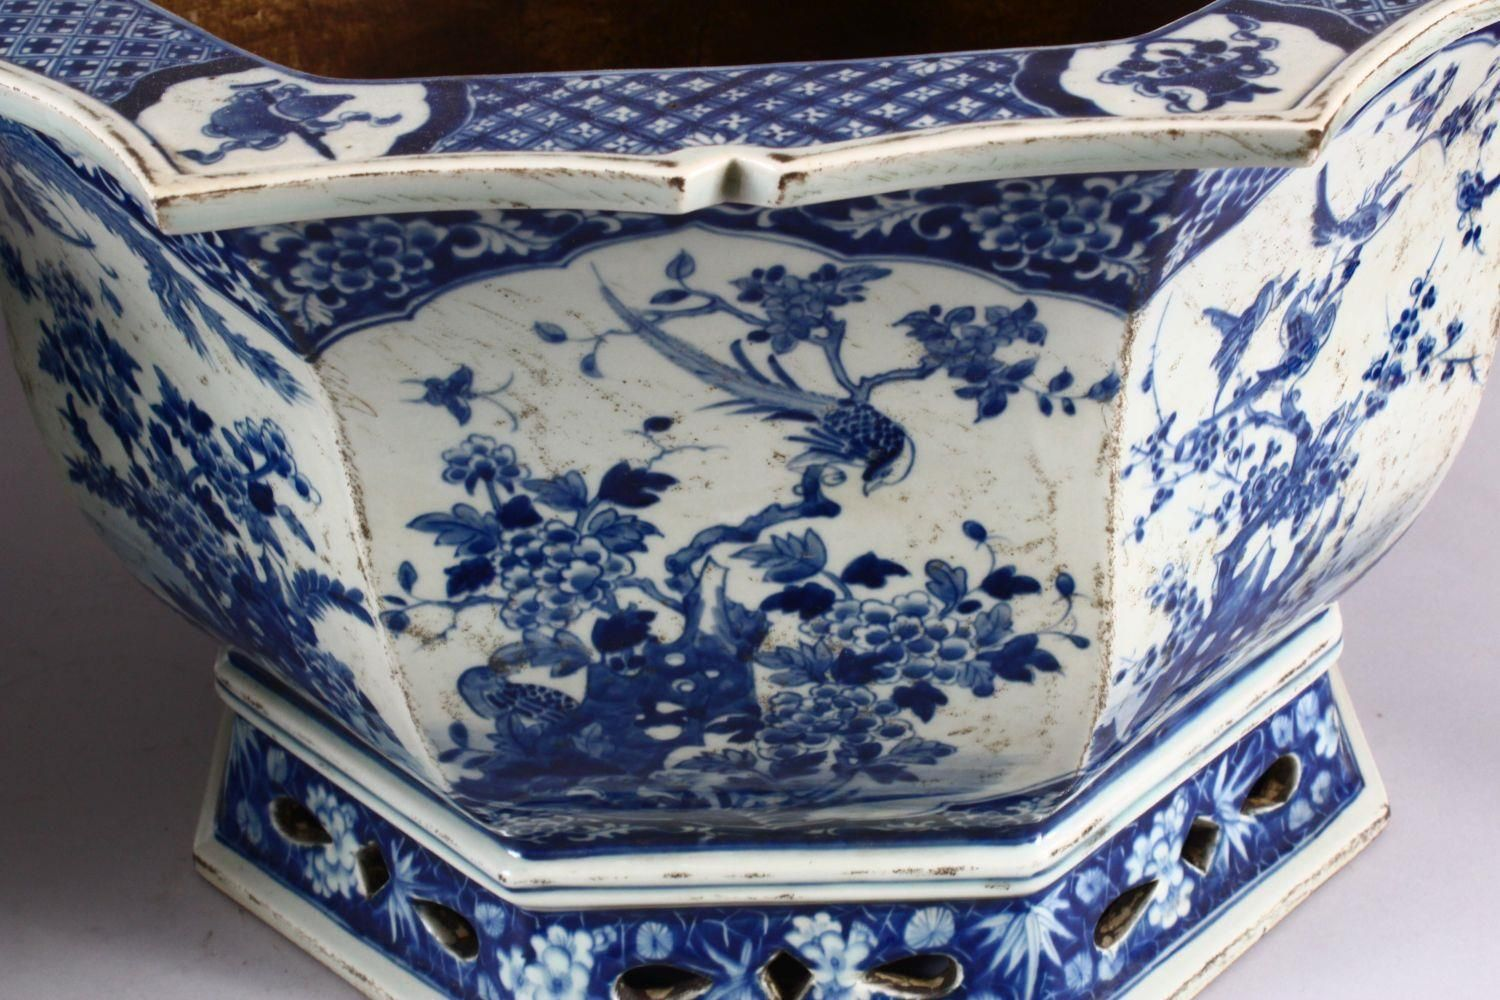 A PAIR OF LARGE CHINESE BLUE & WHITE OCTAGONAL PORCELAIN JARDINIERE / PLANTERS, decorated with - Image 7 of 8